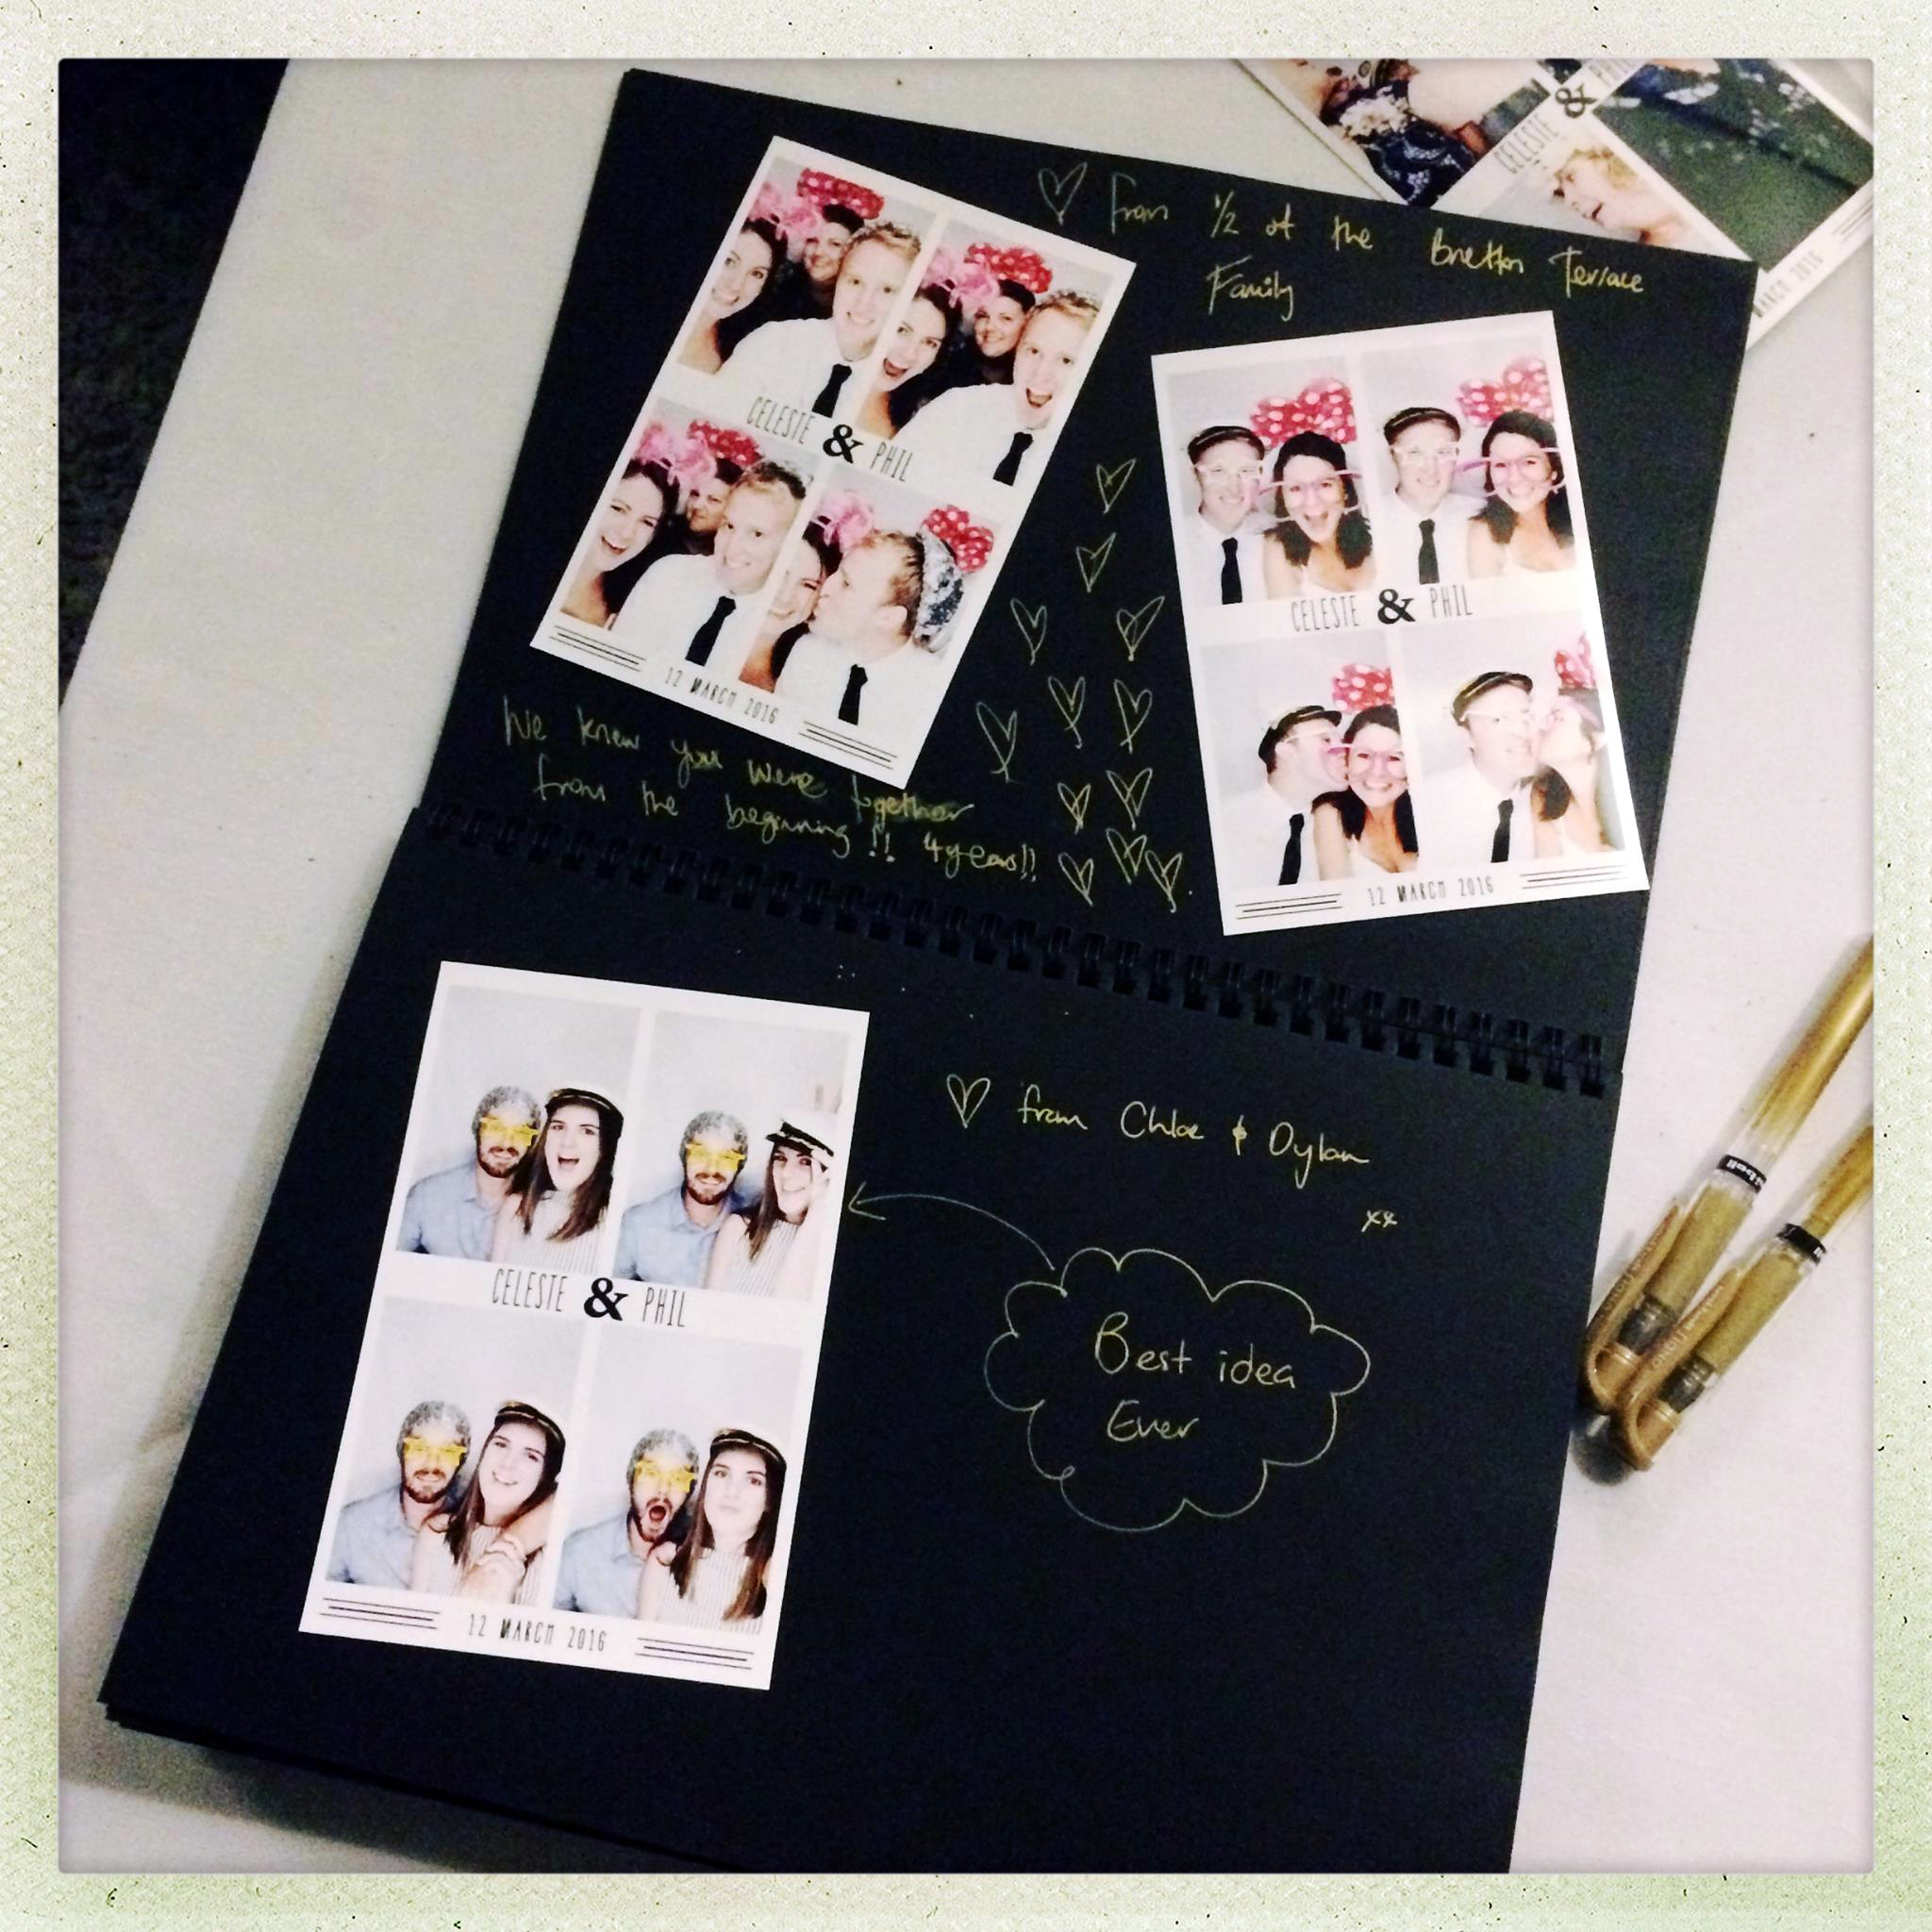 CREATE an instant photo booth album | PHOTO CREDIT:  Photoautomatica (  www.photoautomatica.co.nz  )